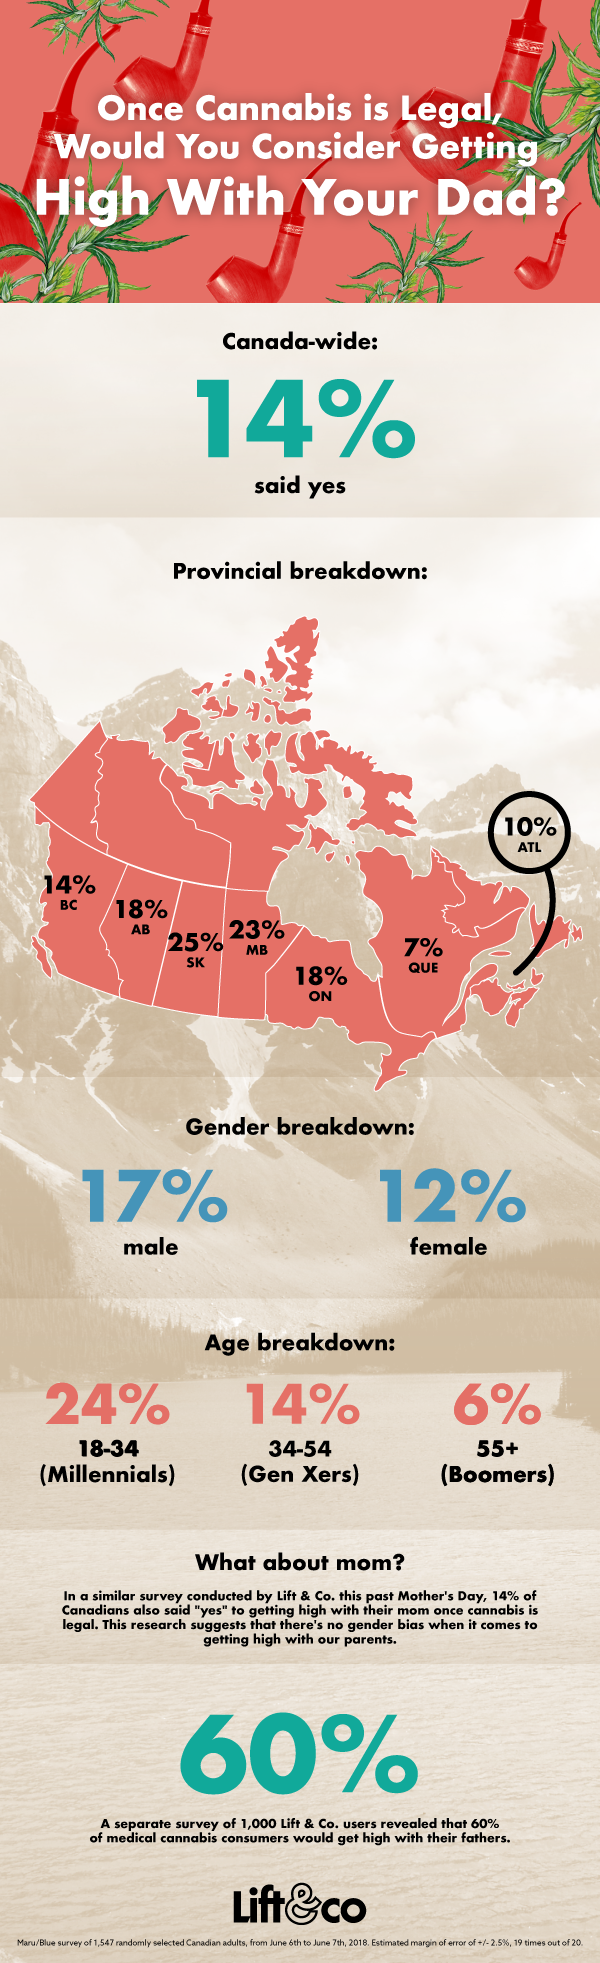 Millennial Canadians Are The Most Likely Age Group To Consider Smoking Weed With Their